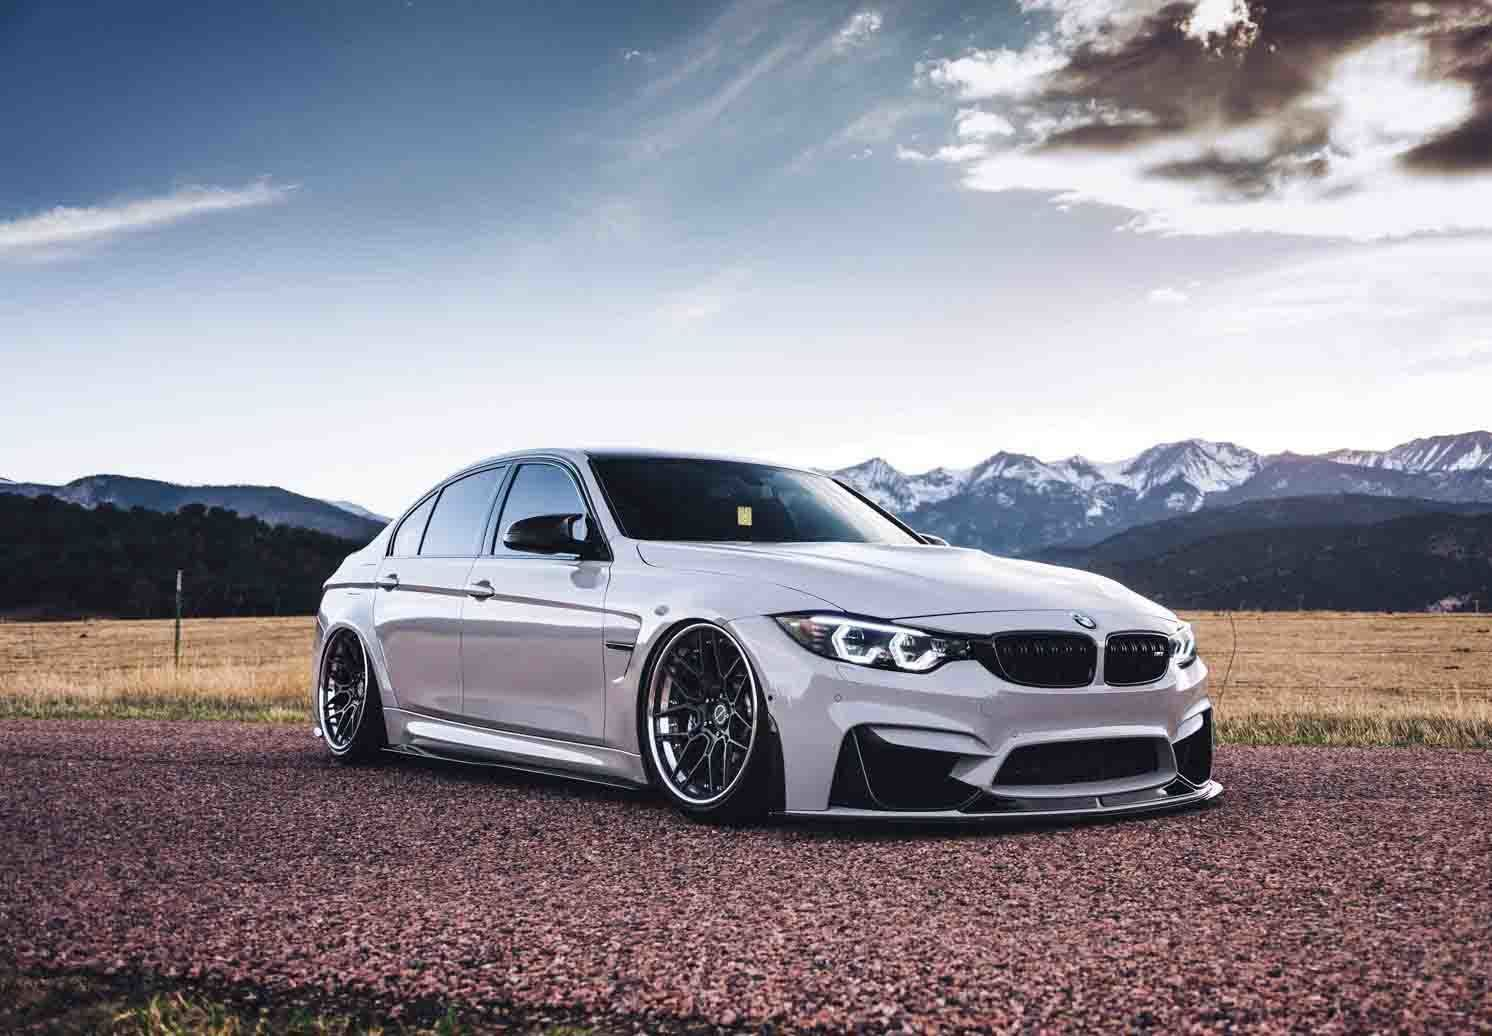 images-products-1-2634-232974922-fashion-grey-bmw-f80-m3-brixton-forged-cm8-targa-series-3-piece-concave-forged-wheels-20-brushed.jpg